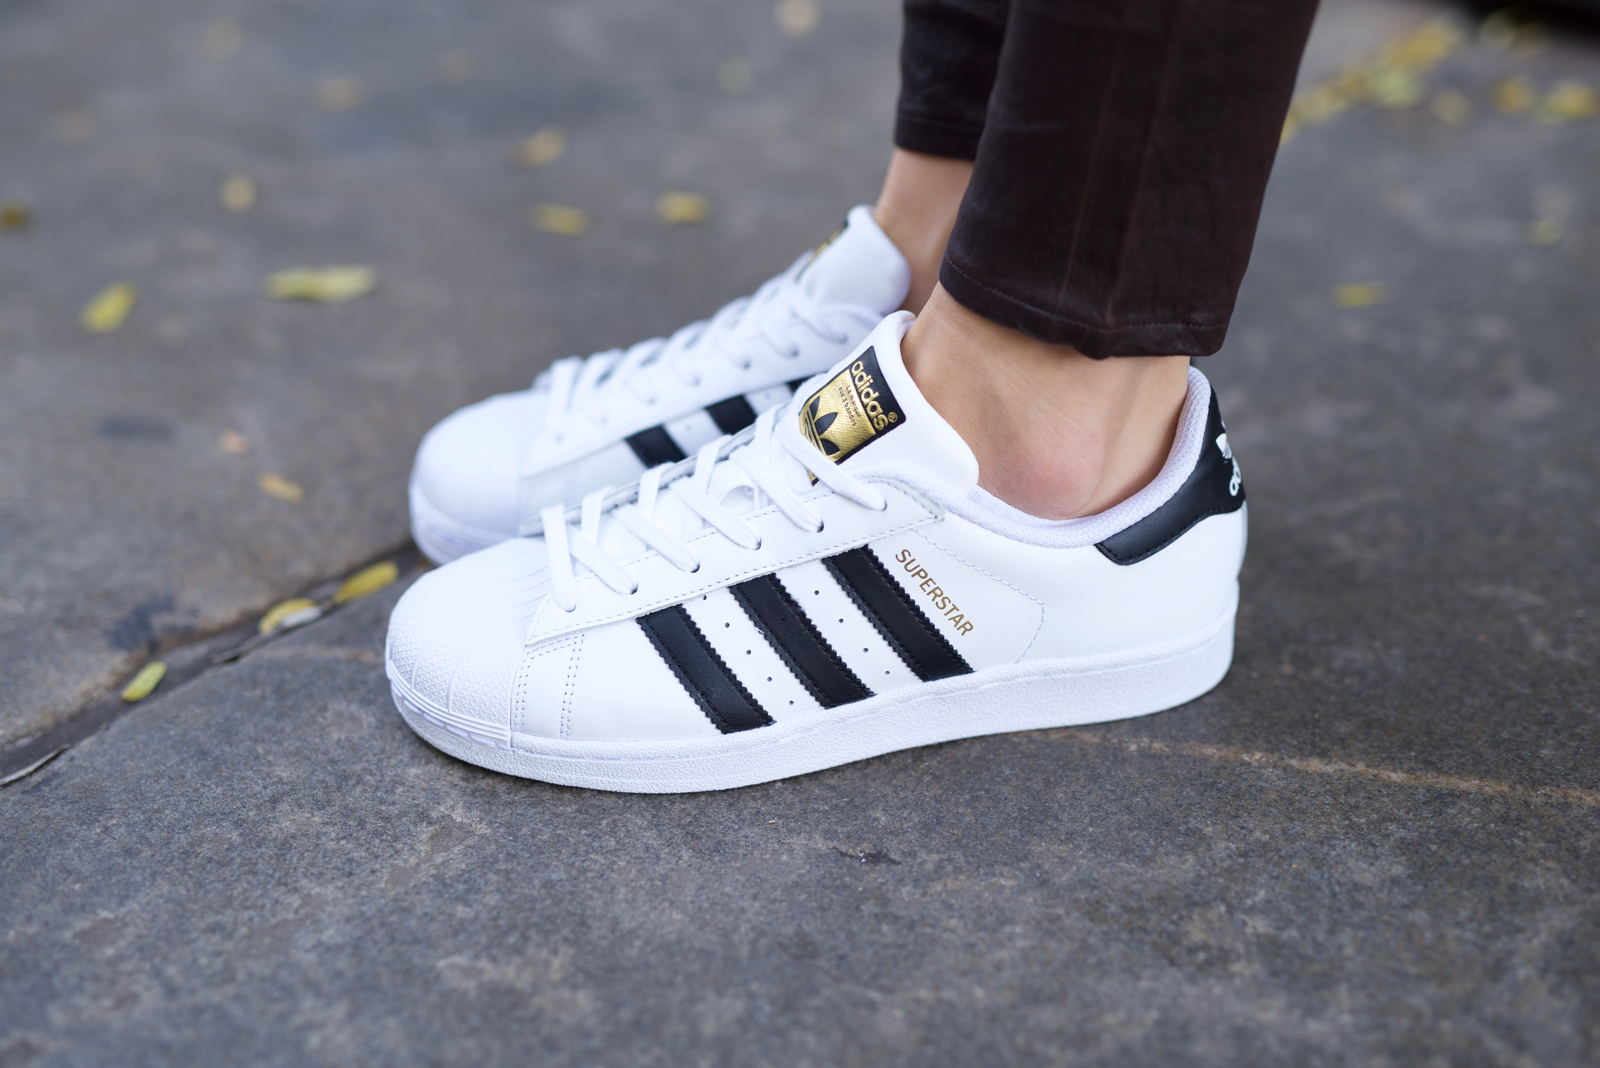 Adidas Superstar shoes, leather pants, cashmere sweater